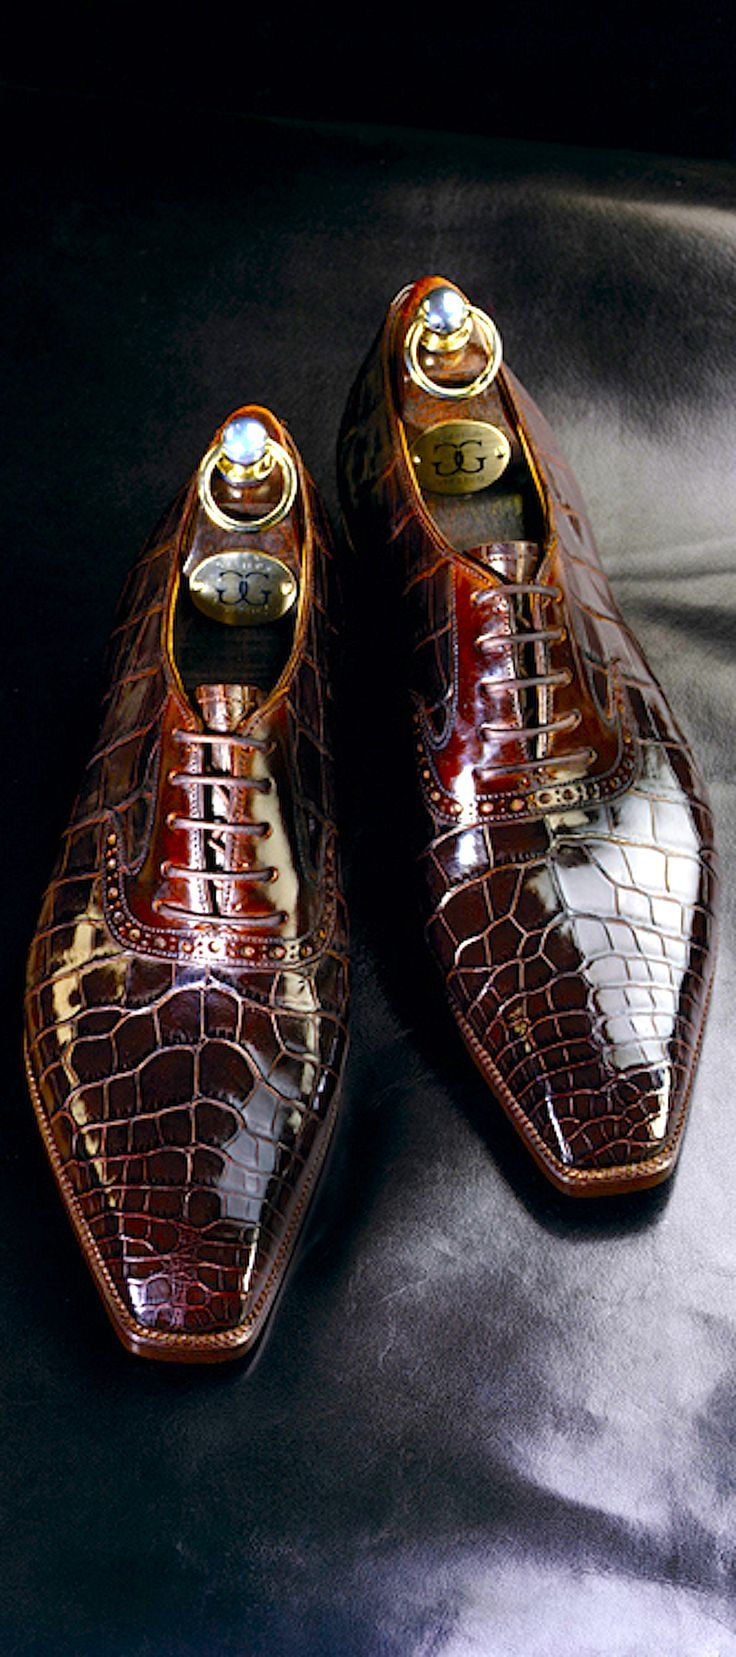 Bespoke Crocodile lace-up shoes by Gaziano & Girling. The company was started in 2006 by Tony Gaziano and Dean Girling in order to create ready-to-wear and bespoke men shoes. - best shoe stores, shoes for free, summer shoes for women *sponsored https://www.pinterest.com/shoes_shoe/ https://www.pinterest.com/explore/shoes/ https://www.pinterest.com/shoes_shoe/boat-shoes/ http://www.thefryecompany.com/men-shoes/l/214